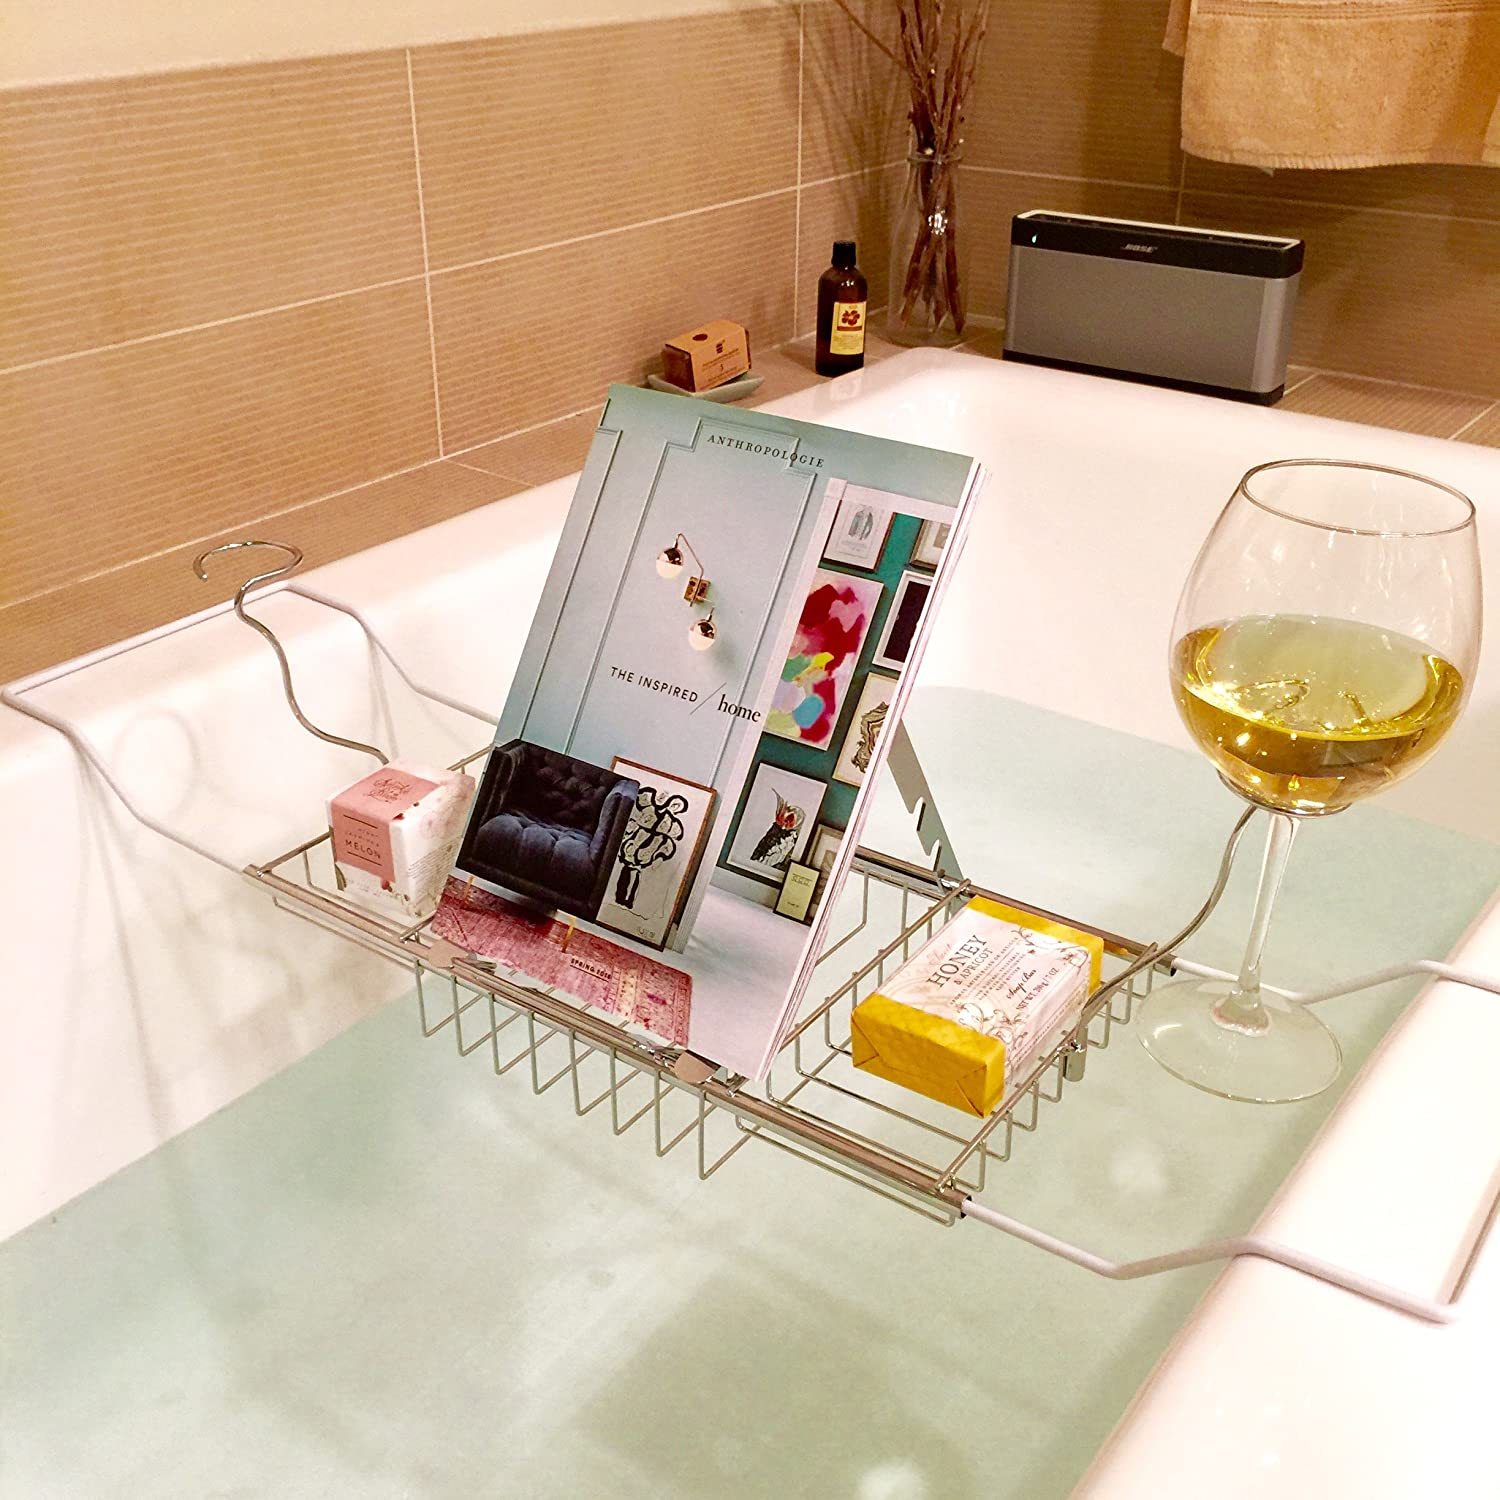 A picture of a bath caddy with a book and a glass of wine on it